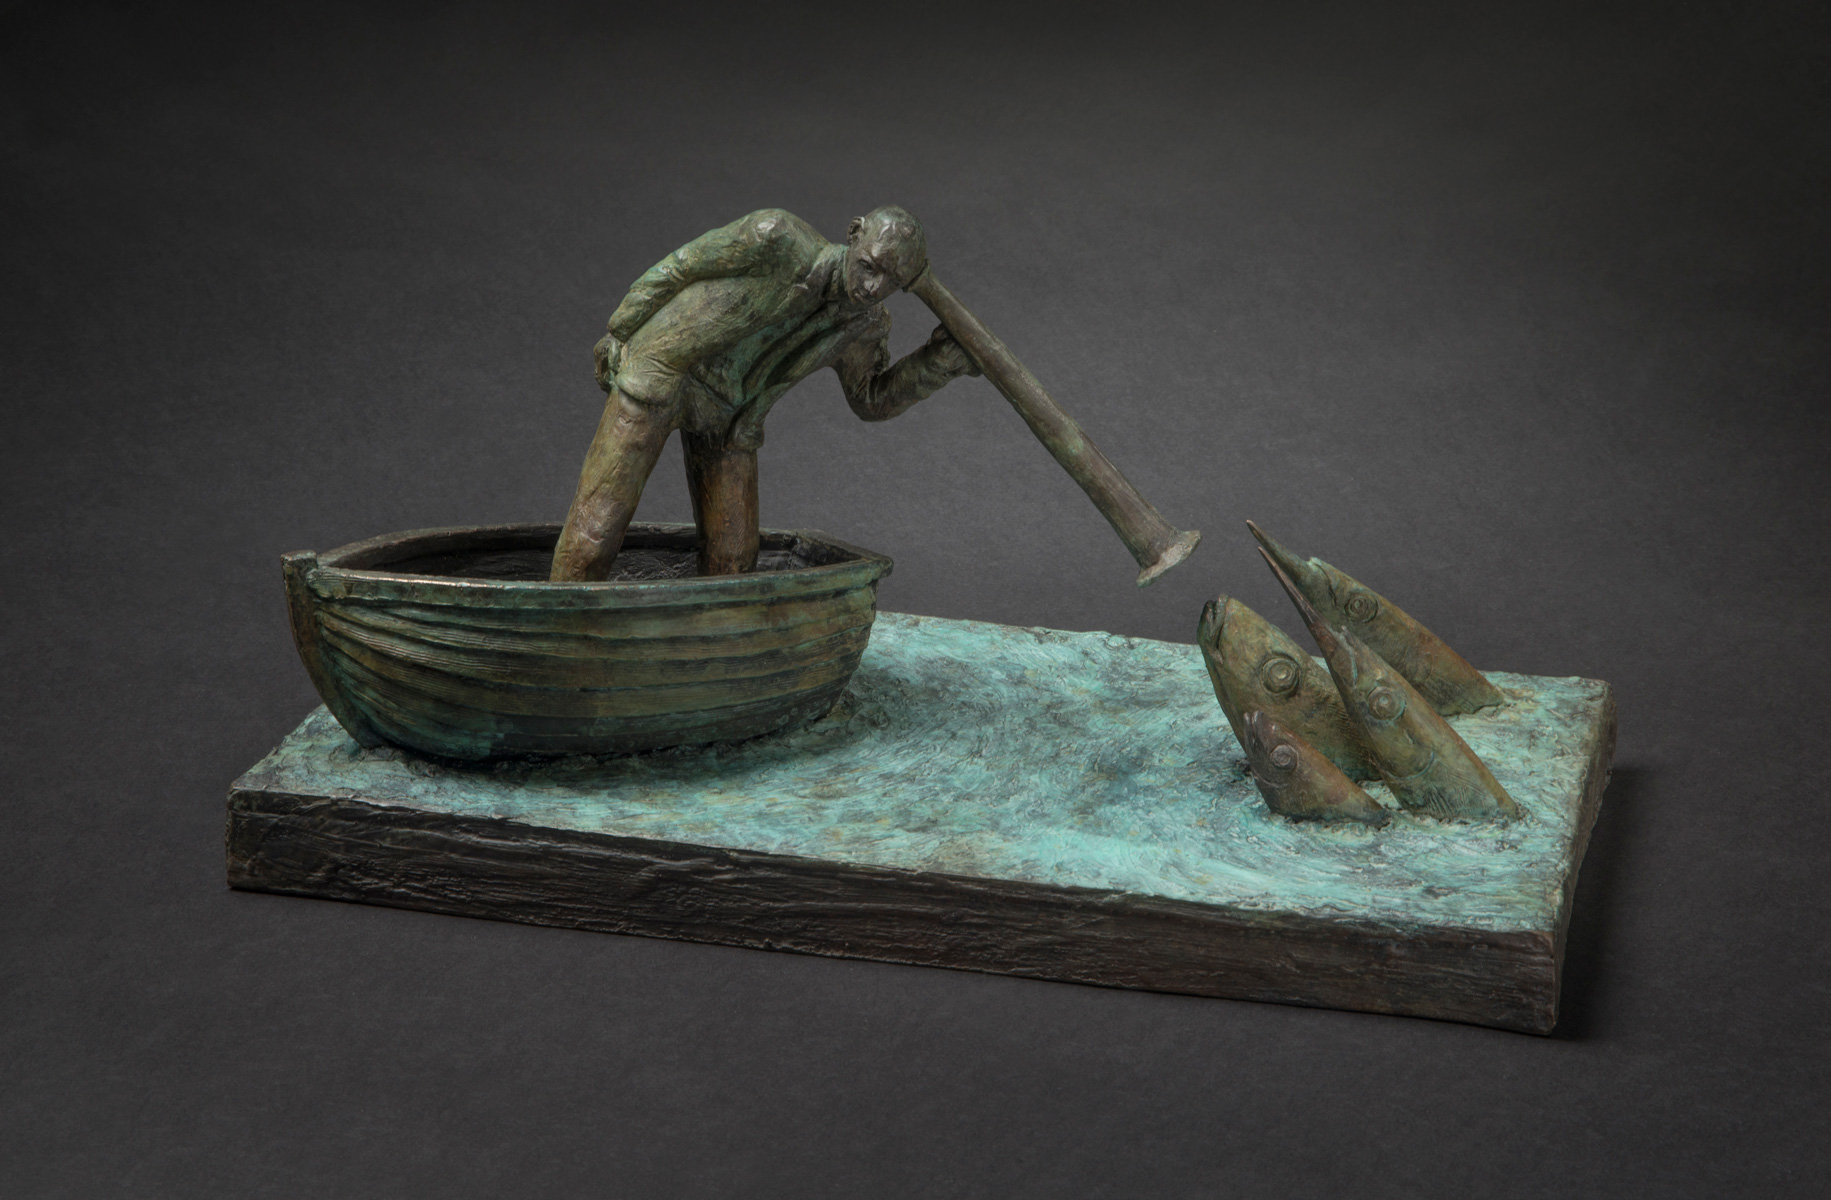 eiseman-the-mariners-dream-18x36x19cm-unique-bronze